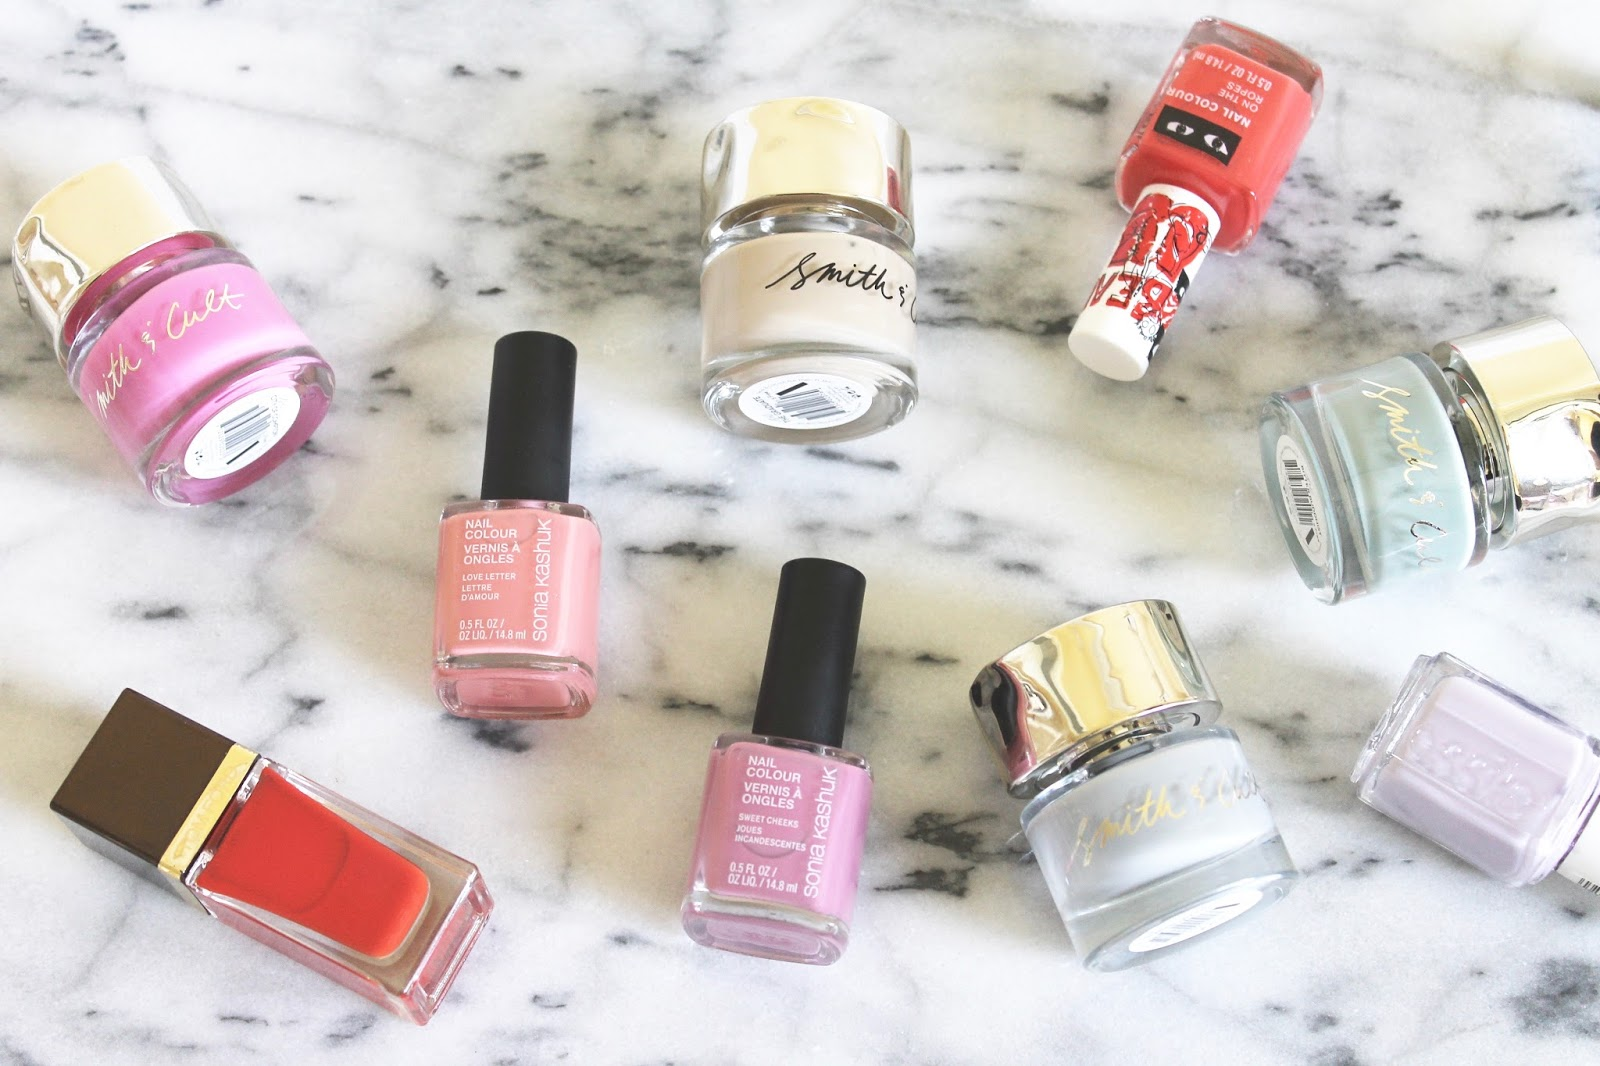 THE SPRING/SUMMER NAIL POLISH EDIT